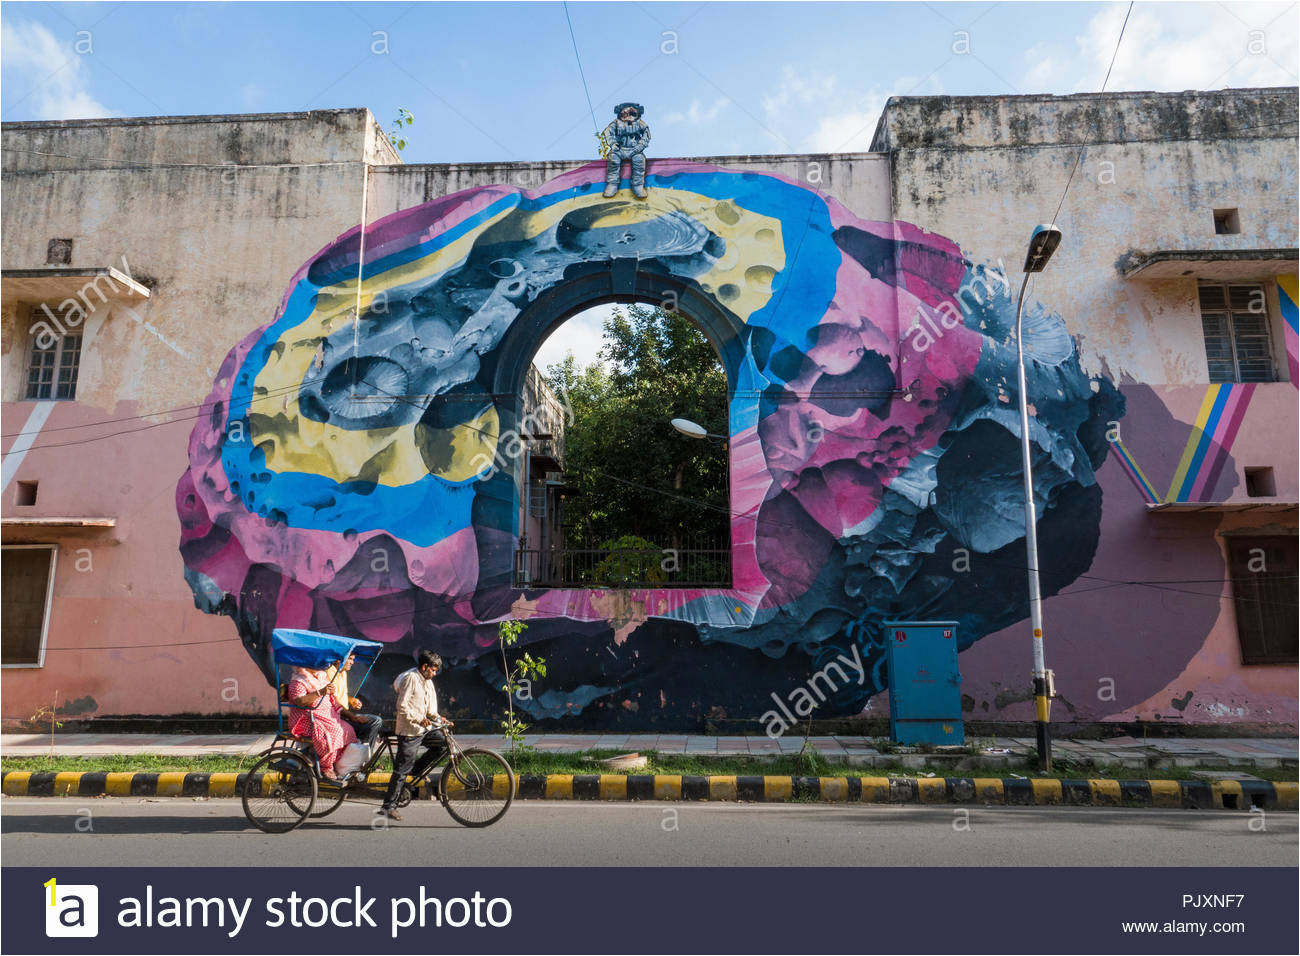 rickshaw rider and passenger ride past wall mural on building painted by swiss artists nevercrew in lodhi colony new delhi india PJXNF7